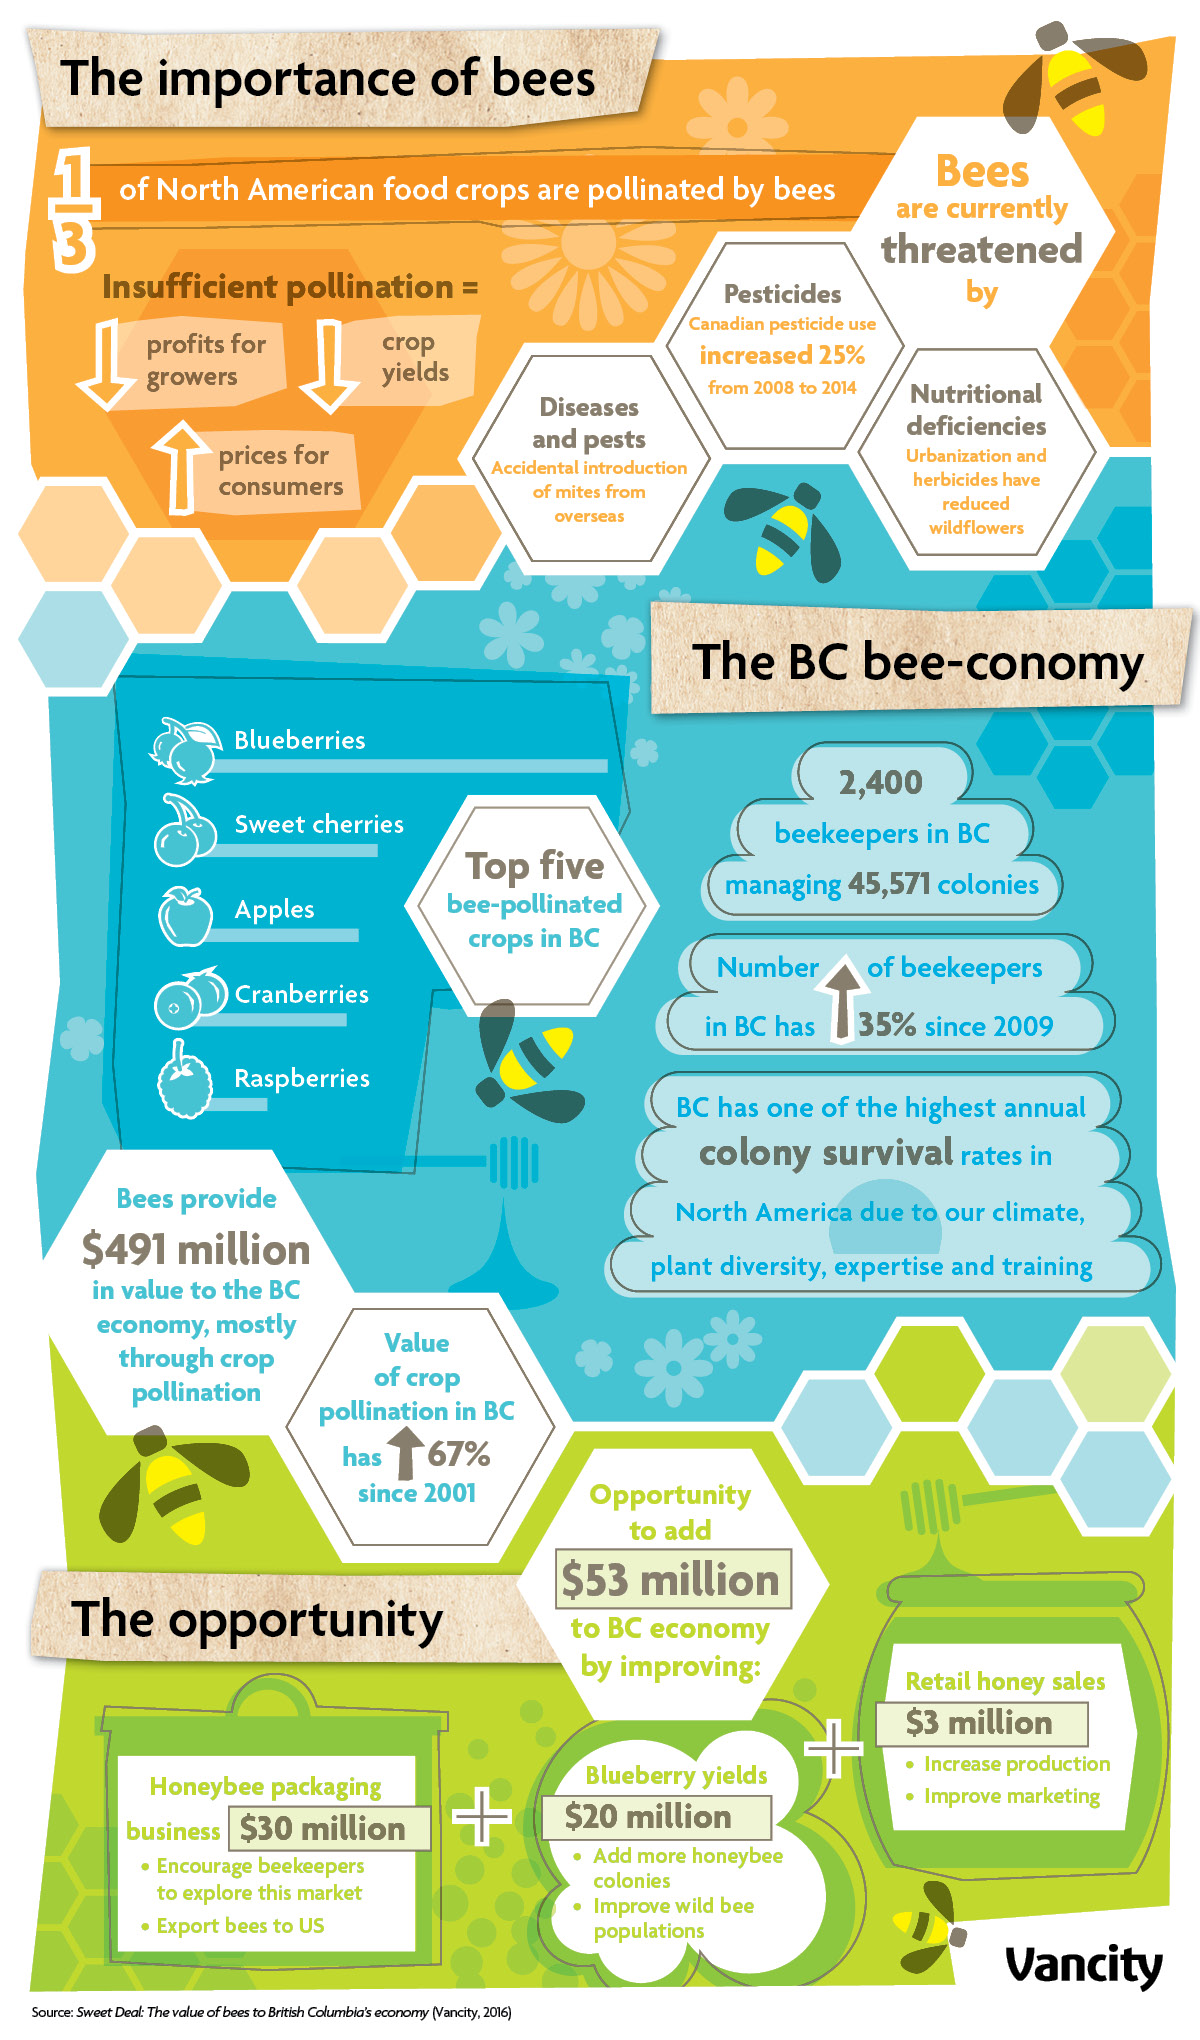 Vancity_Importance-of-Bees_Infographic_FNL